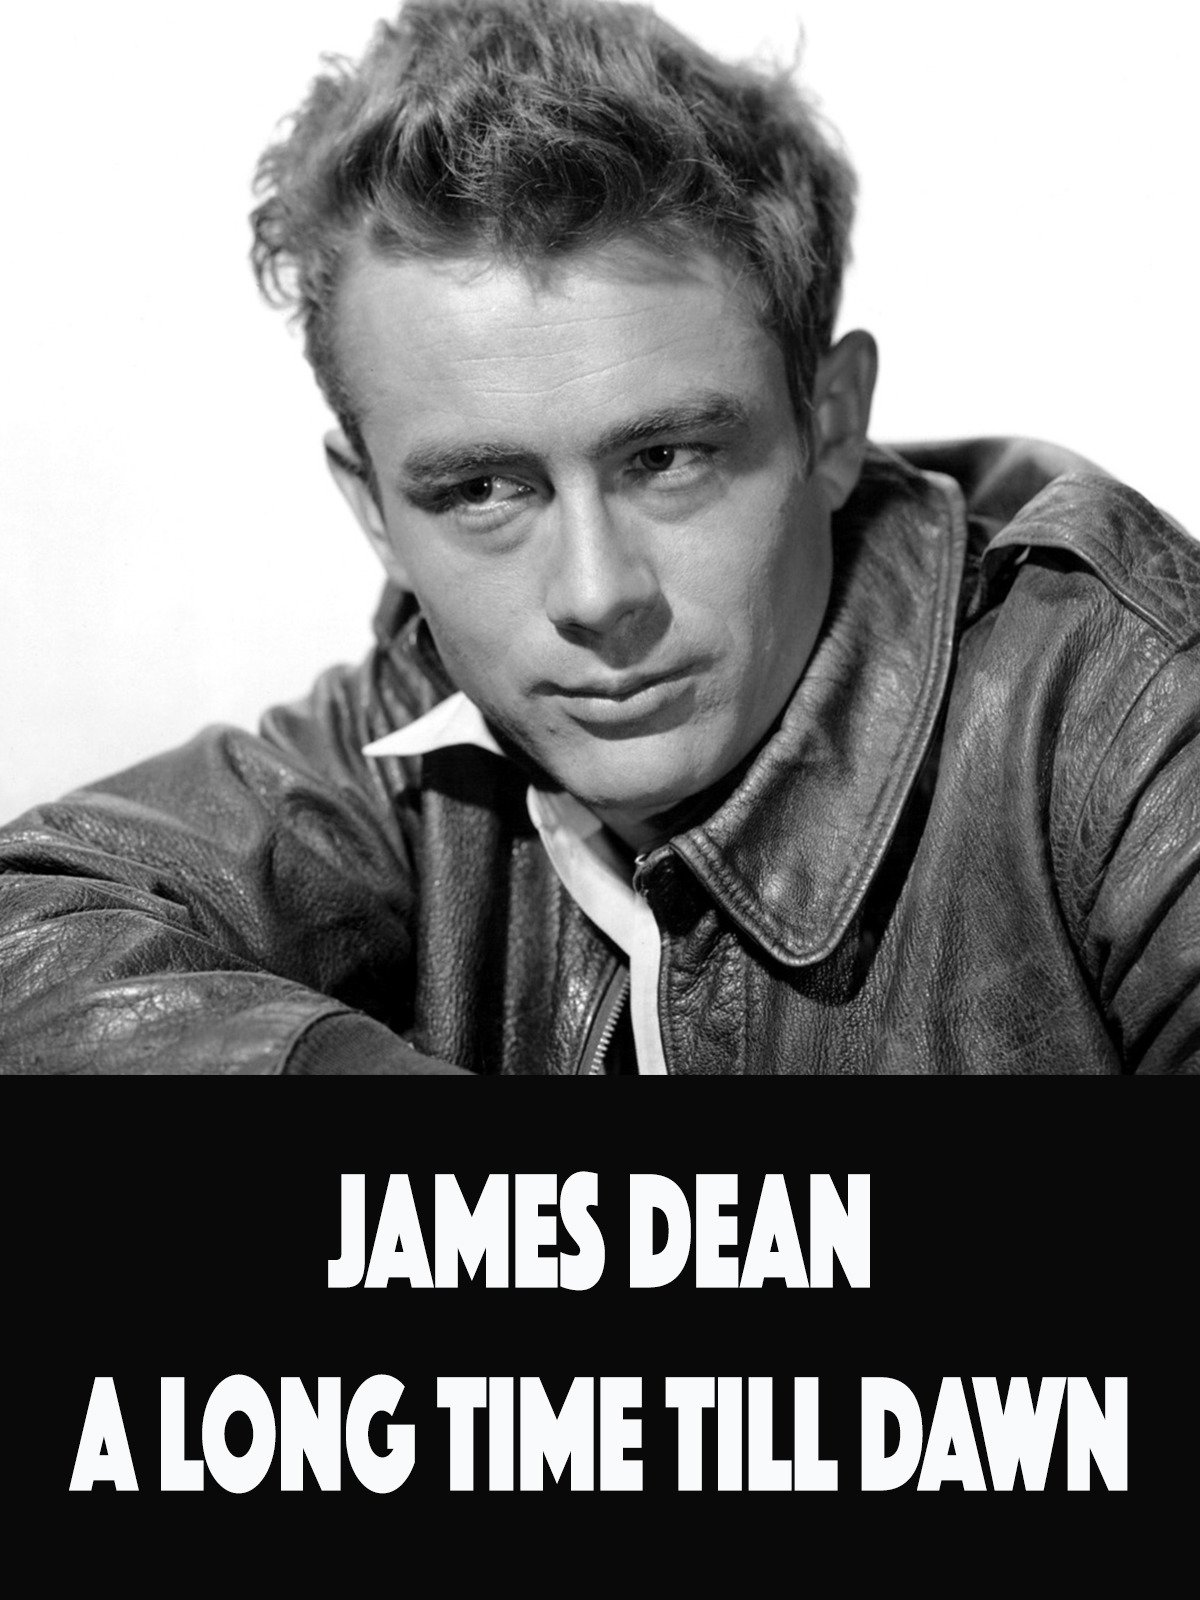 James Dean: A Long Time Till Dawn